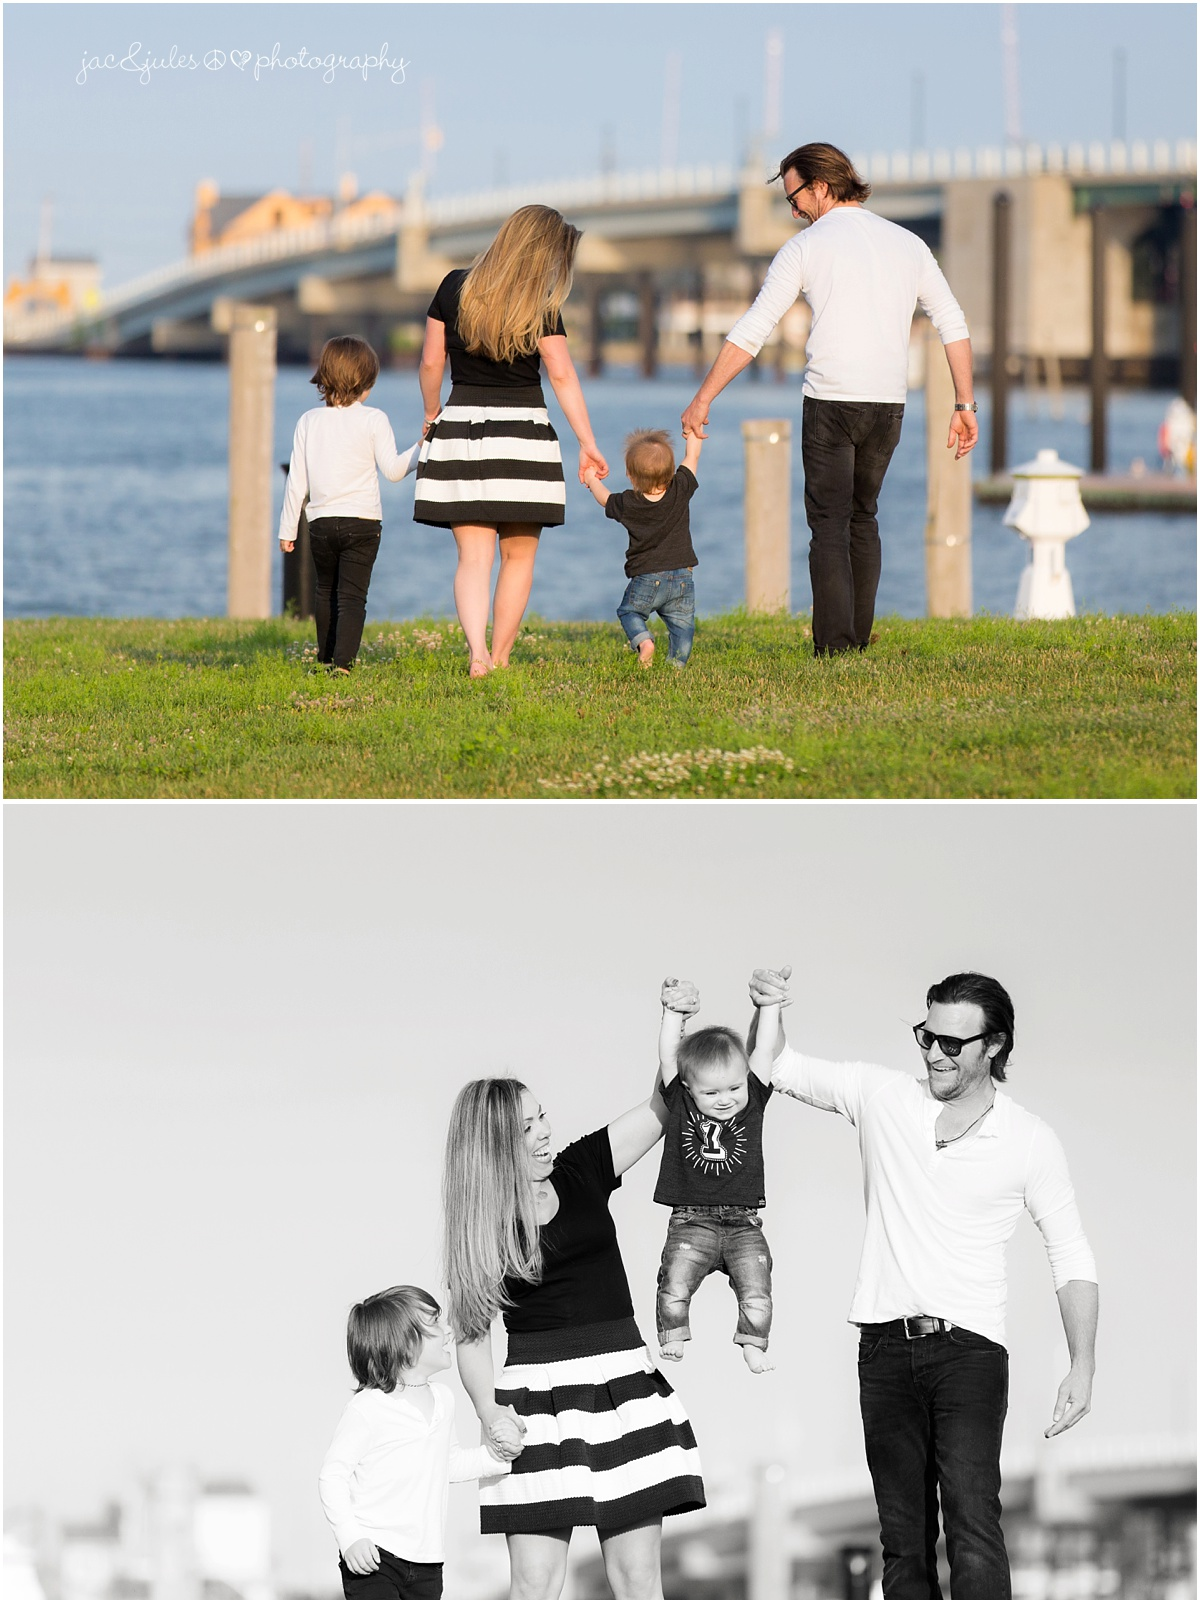 family walking near the bay, and swinging the baby.